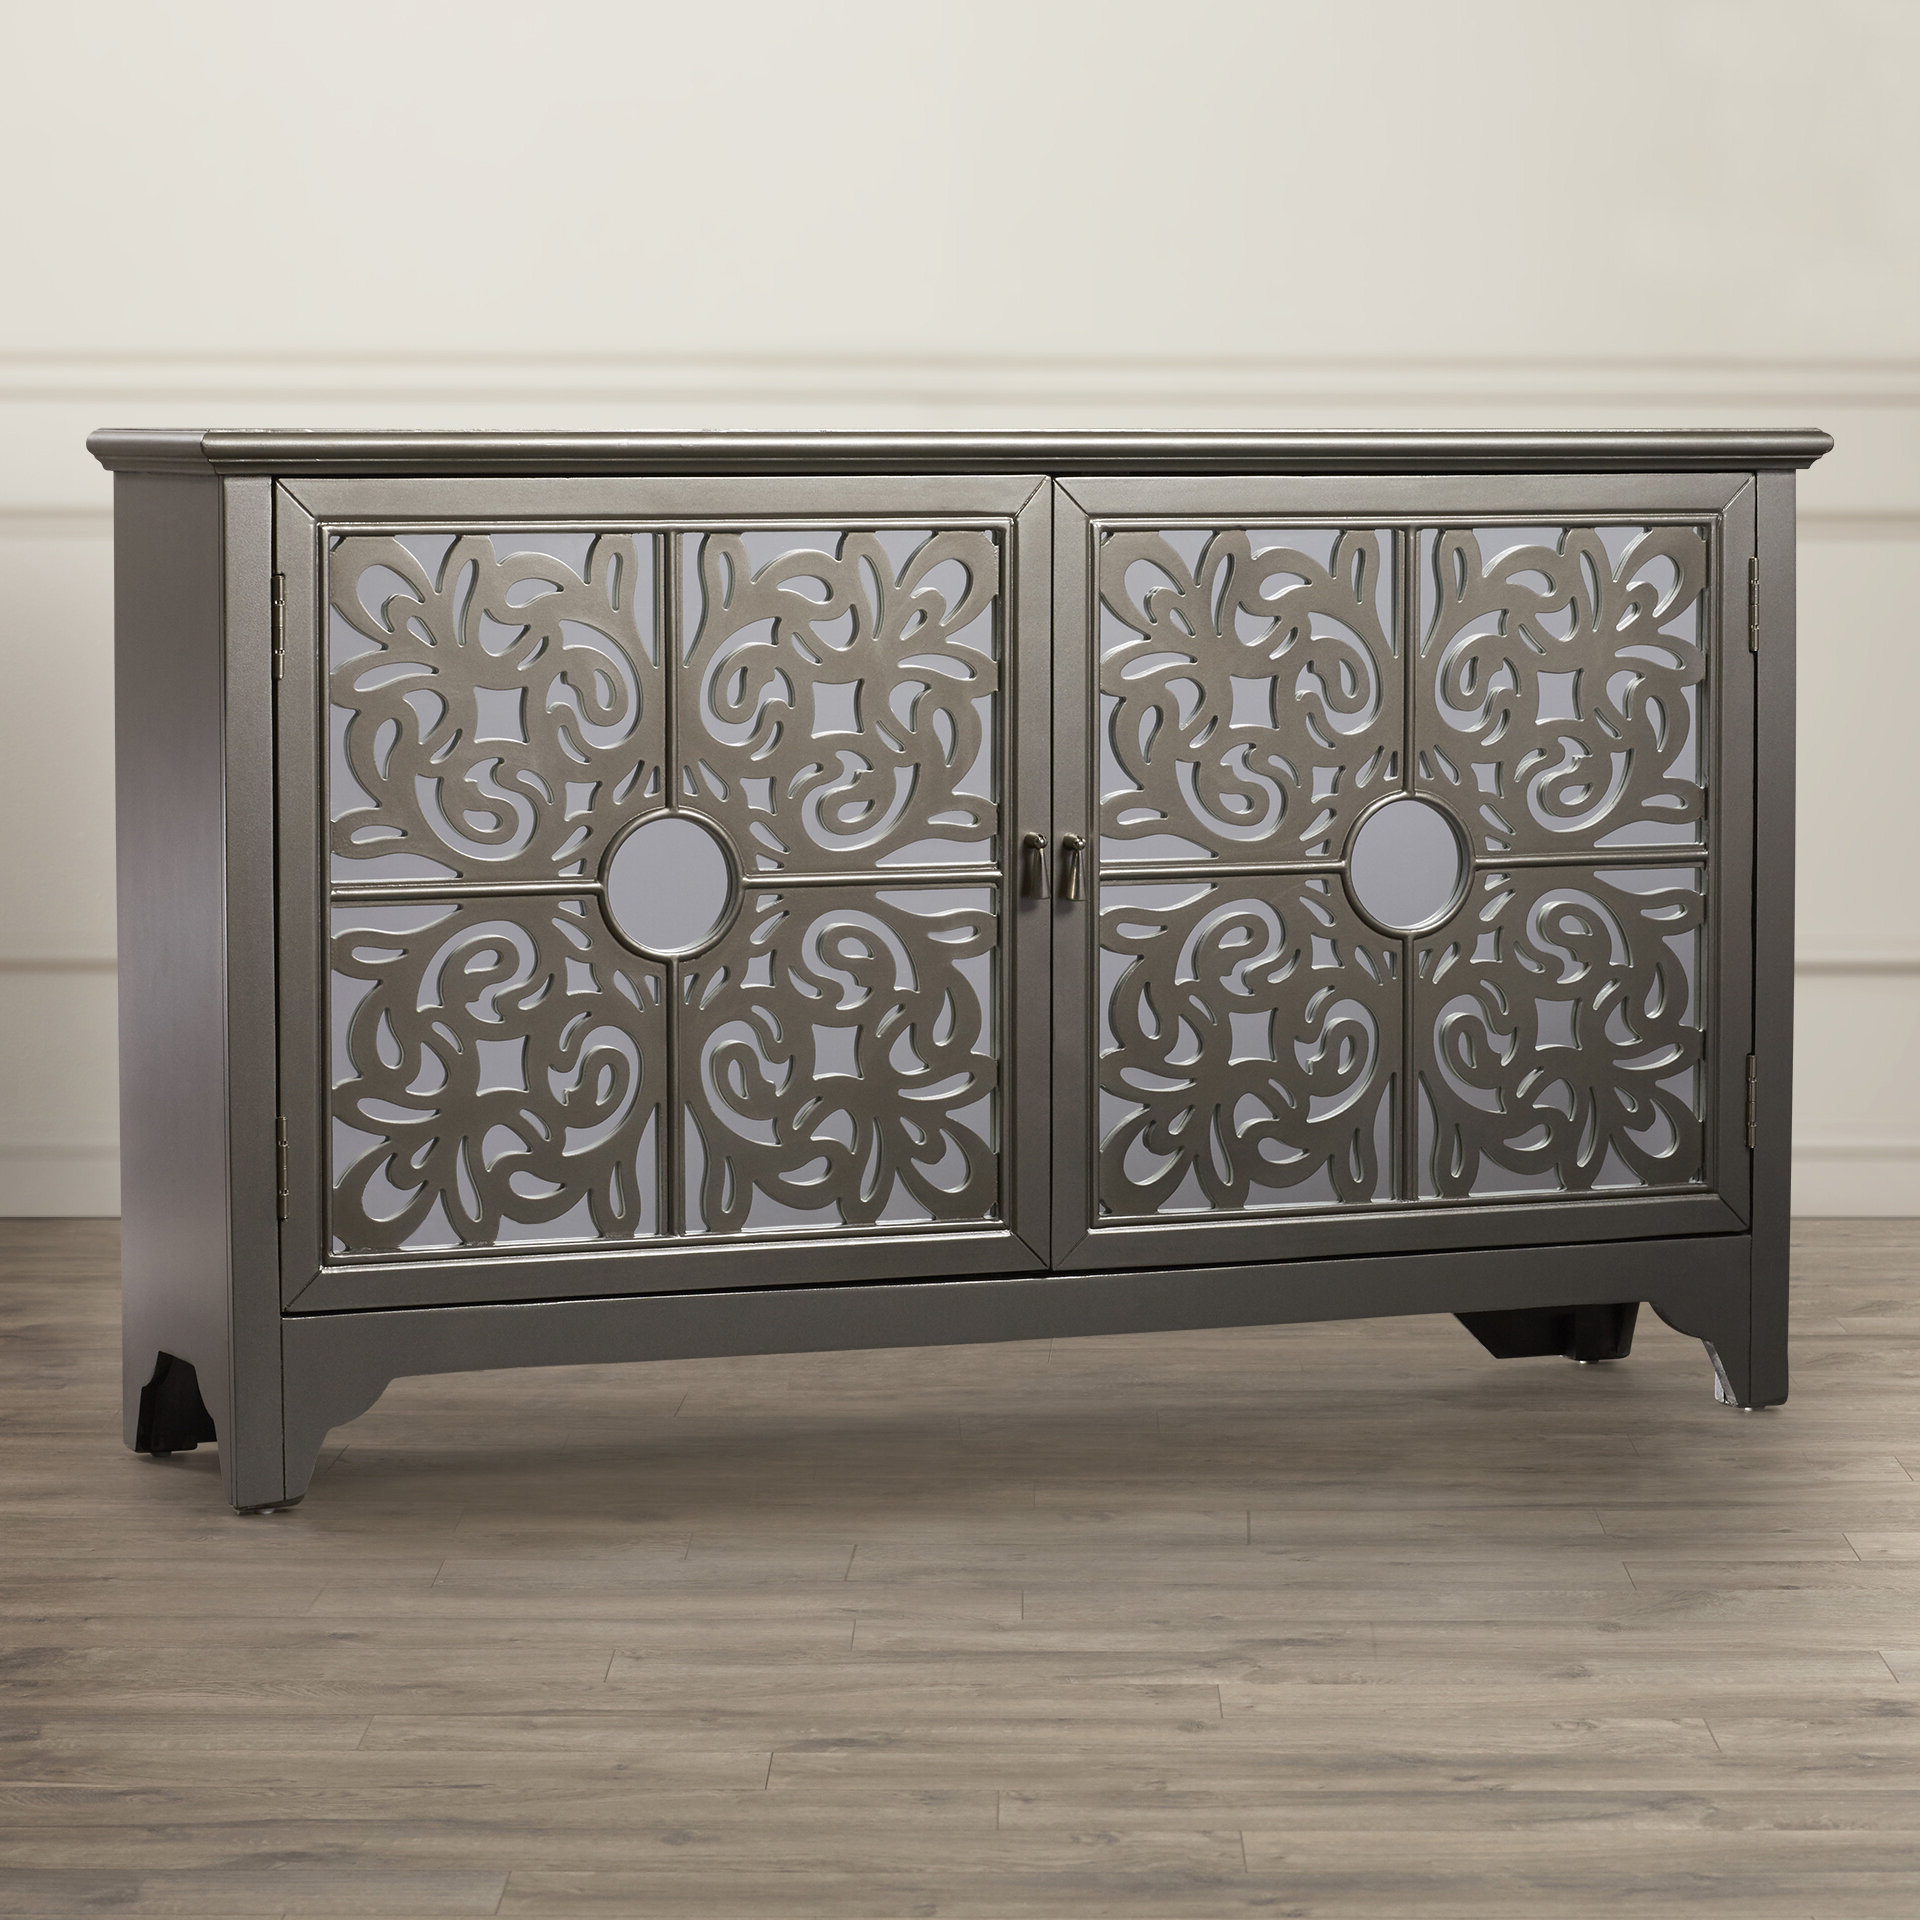 Farmhouse & Rustic Mirrored Sideboards & Buffets | Birch Lane Throughout Senda Credenzas (View 11 of 20)